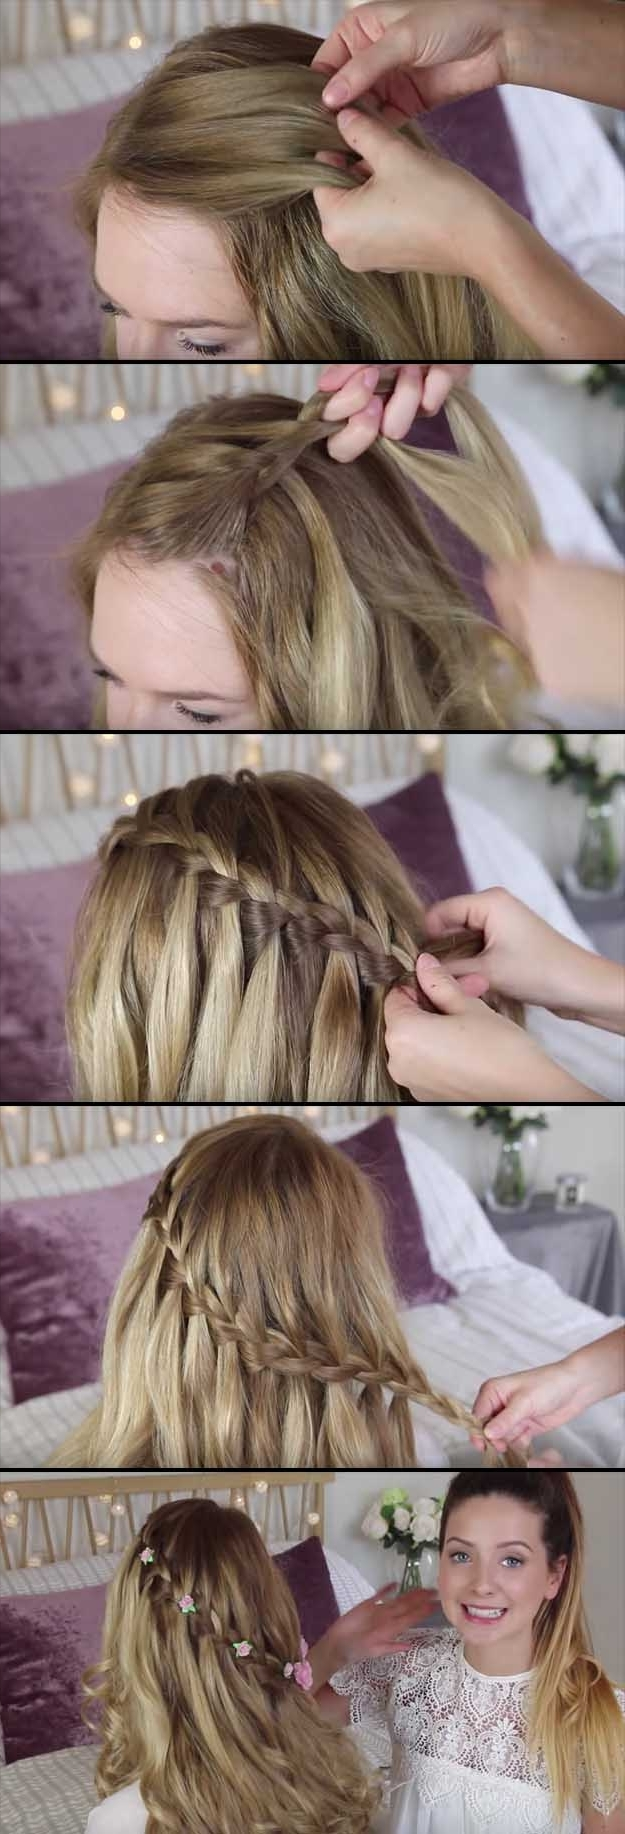 24 Beautiful Bridesmaid Hairstyles For Any Wedding – The Goddess With Most Popular Long Wedding Hairstyles For Bridesmaids (View 2 of 15)